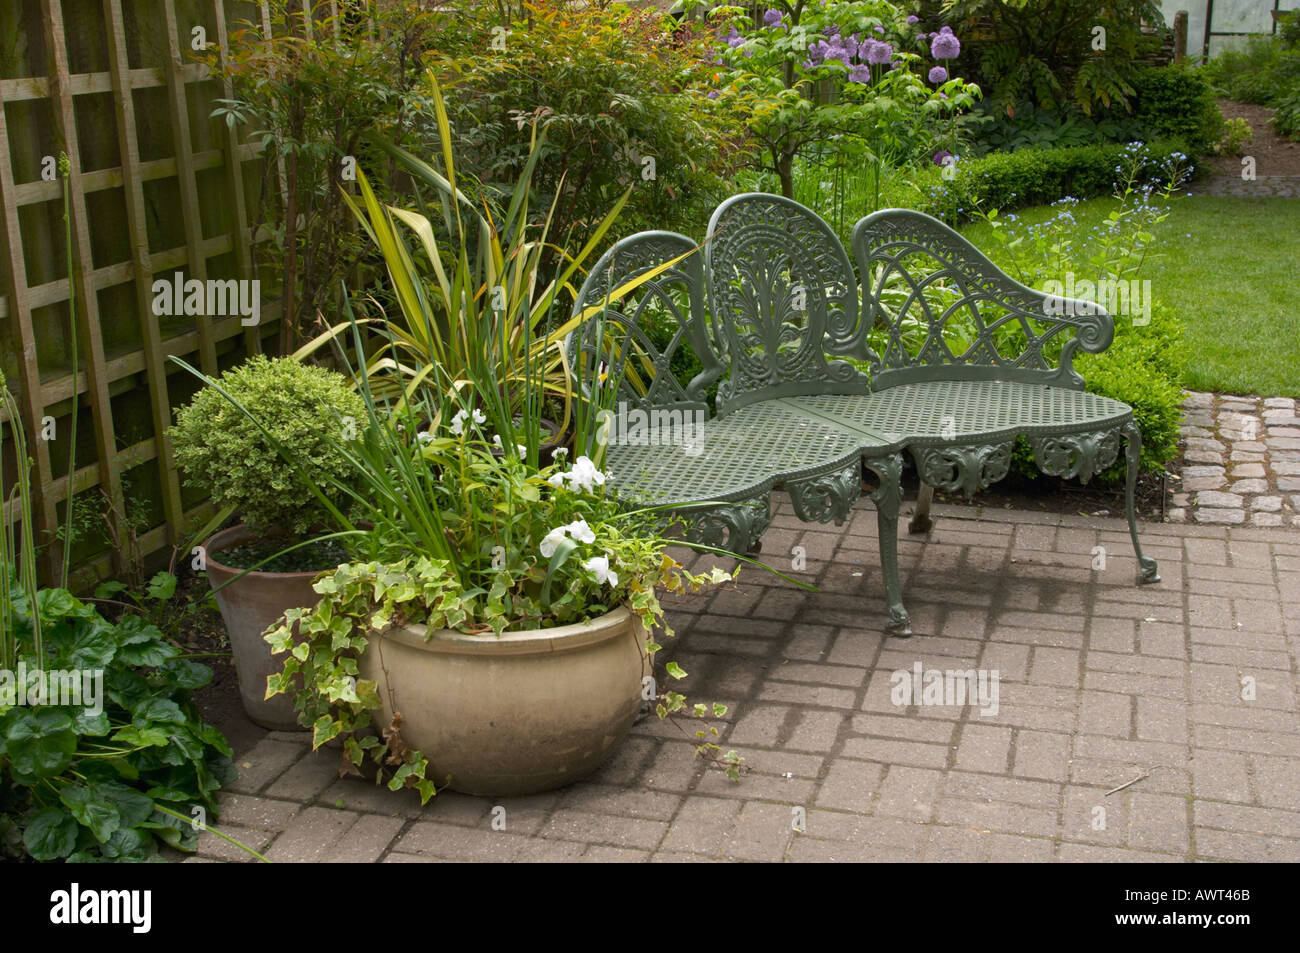 Green Painted Metal Bench On Garden Patio Stock Photo Alamy